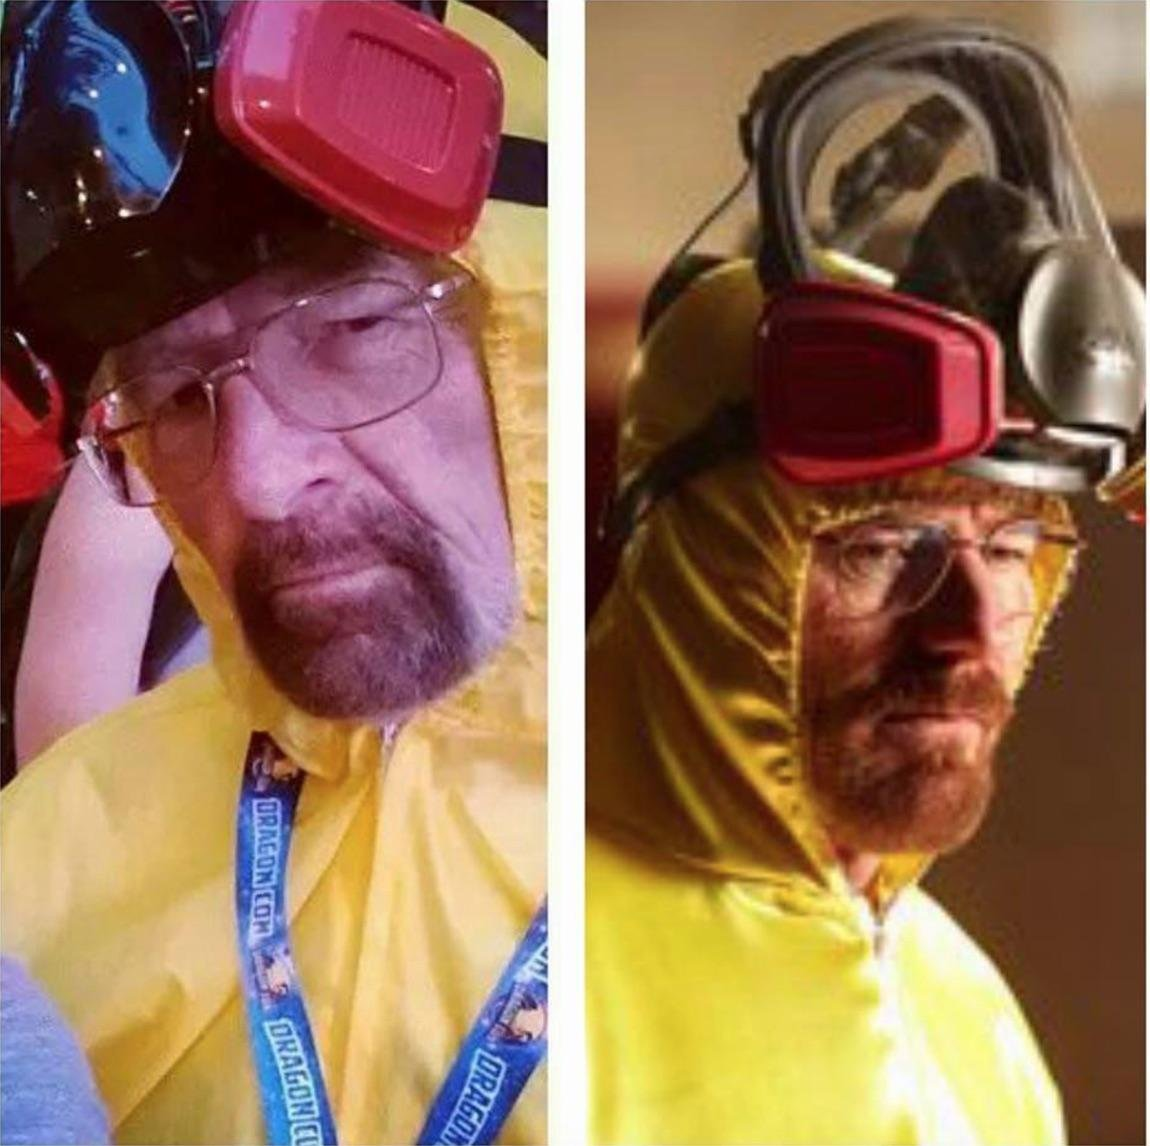 My dad as Walter White looked pretty spot on. Trending on